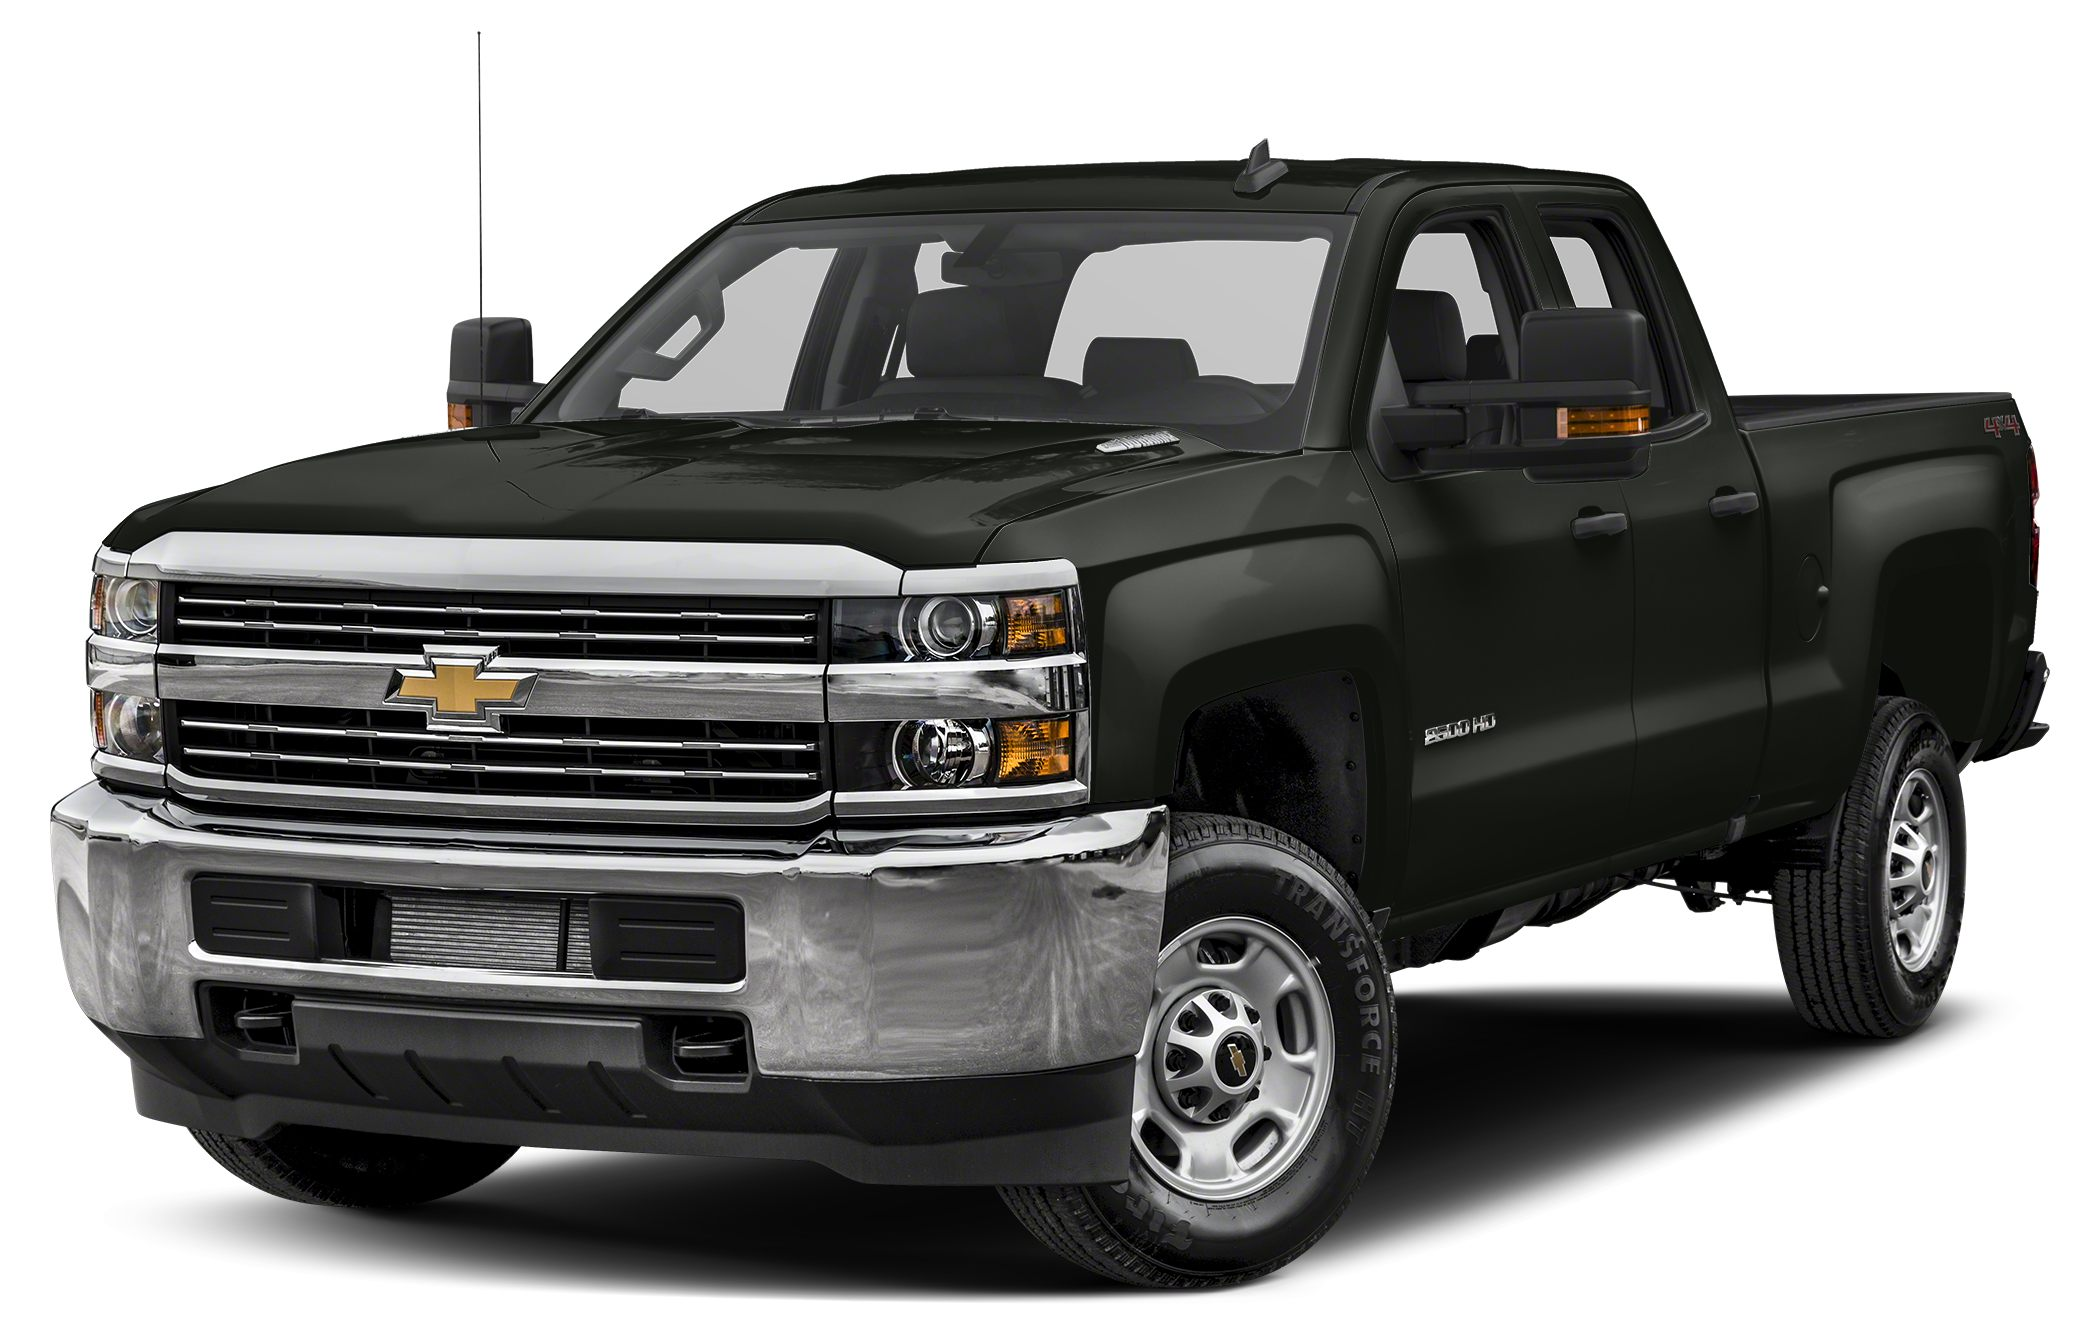 2017 Chevrolet Silverado 2500HD WT Come on over to Scenic Chevrolet and talk with our friendly and